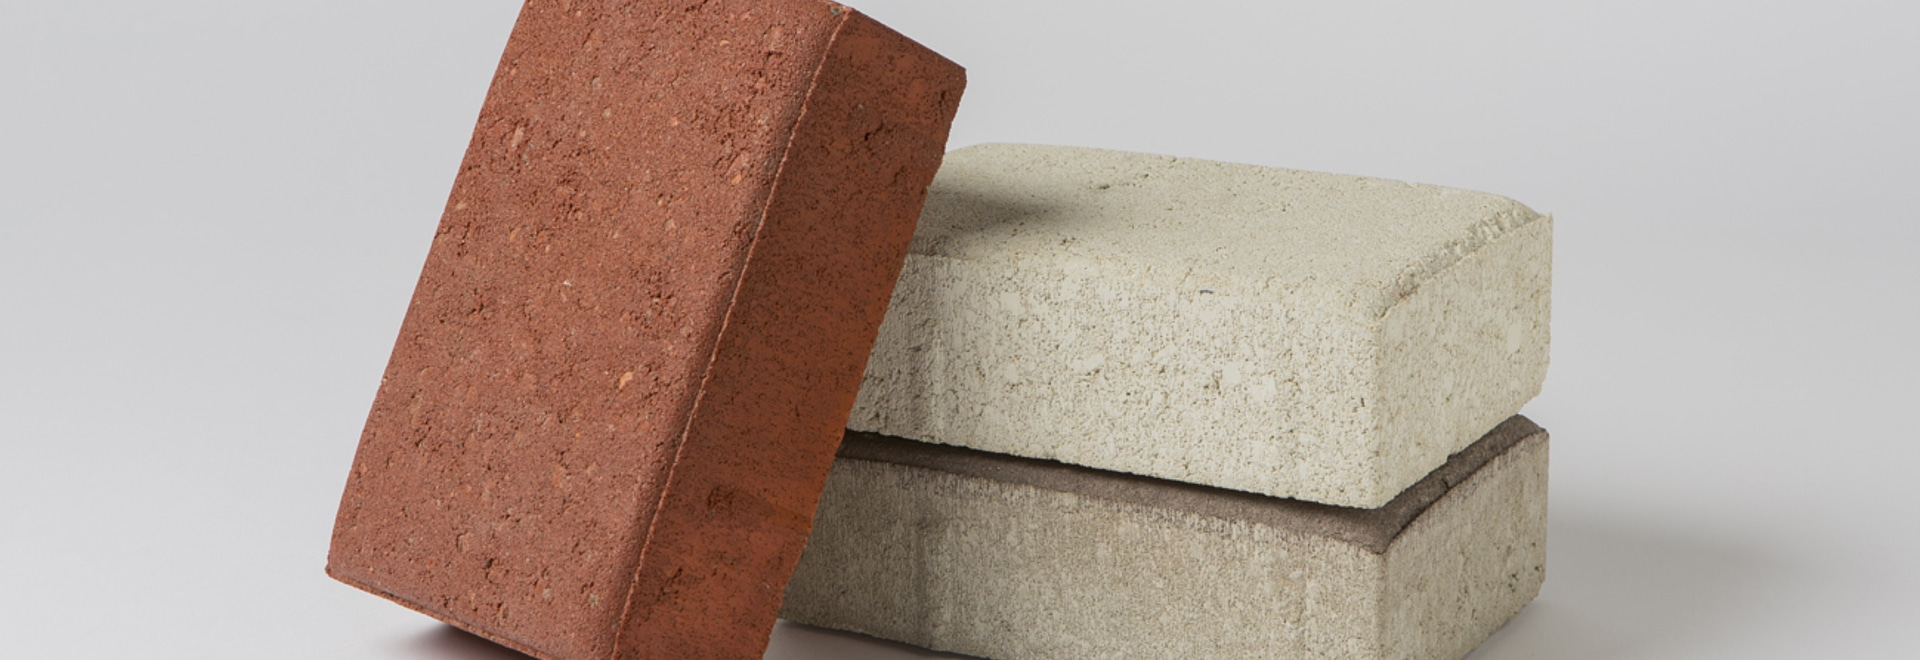 LafargeHolcim secures contract for low-CO2 cement